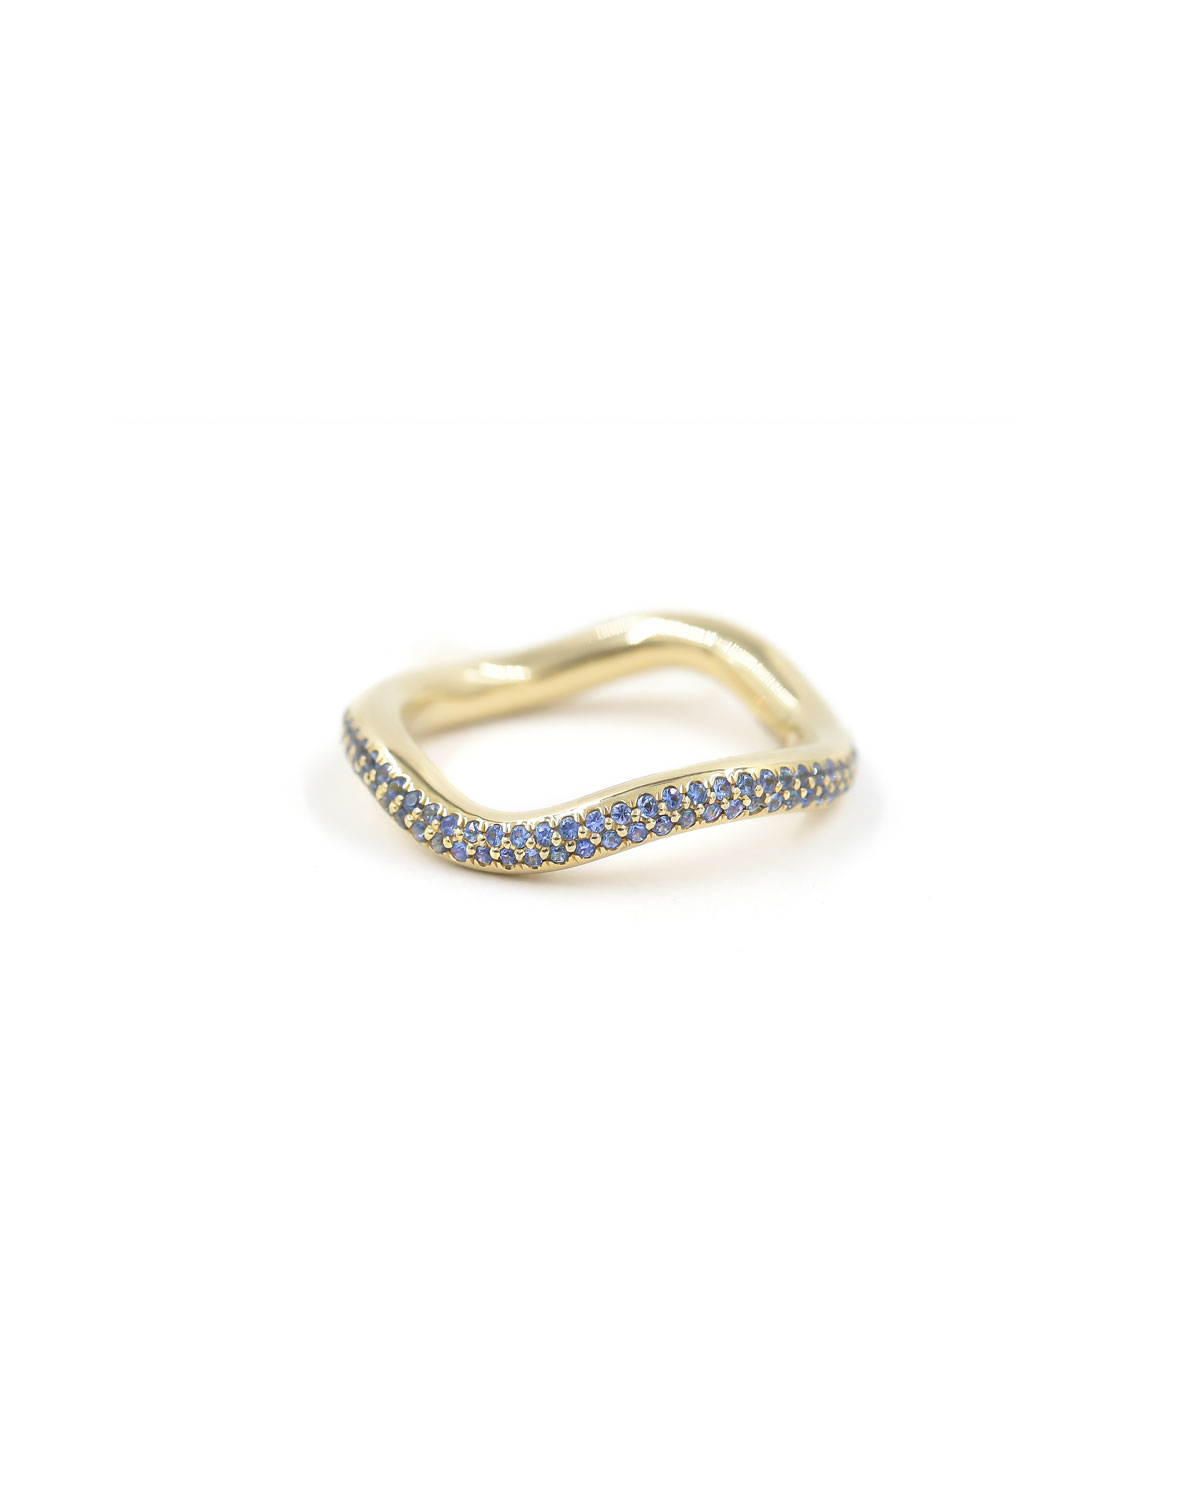 Popie Wave Ring with Pave Blue Sapphires